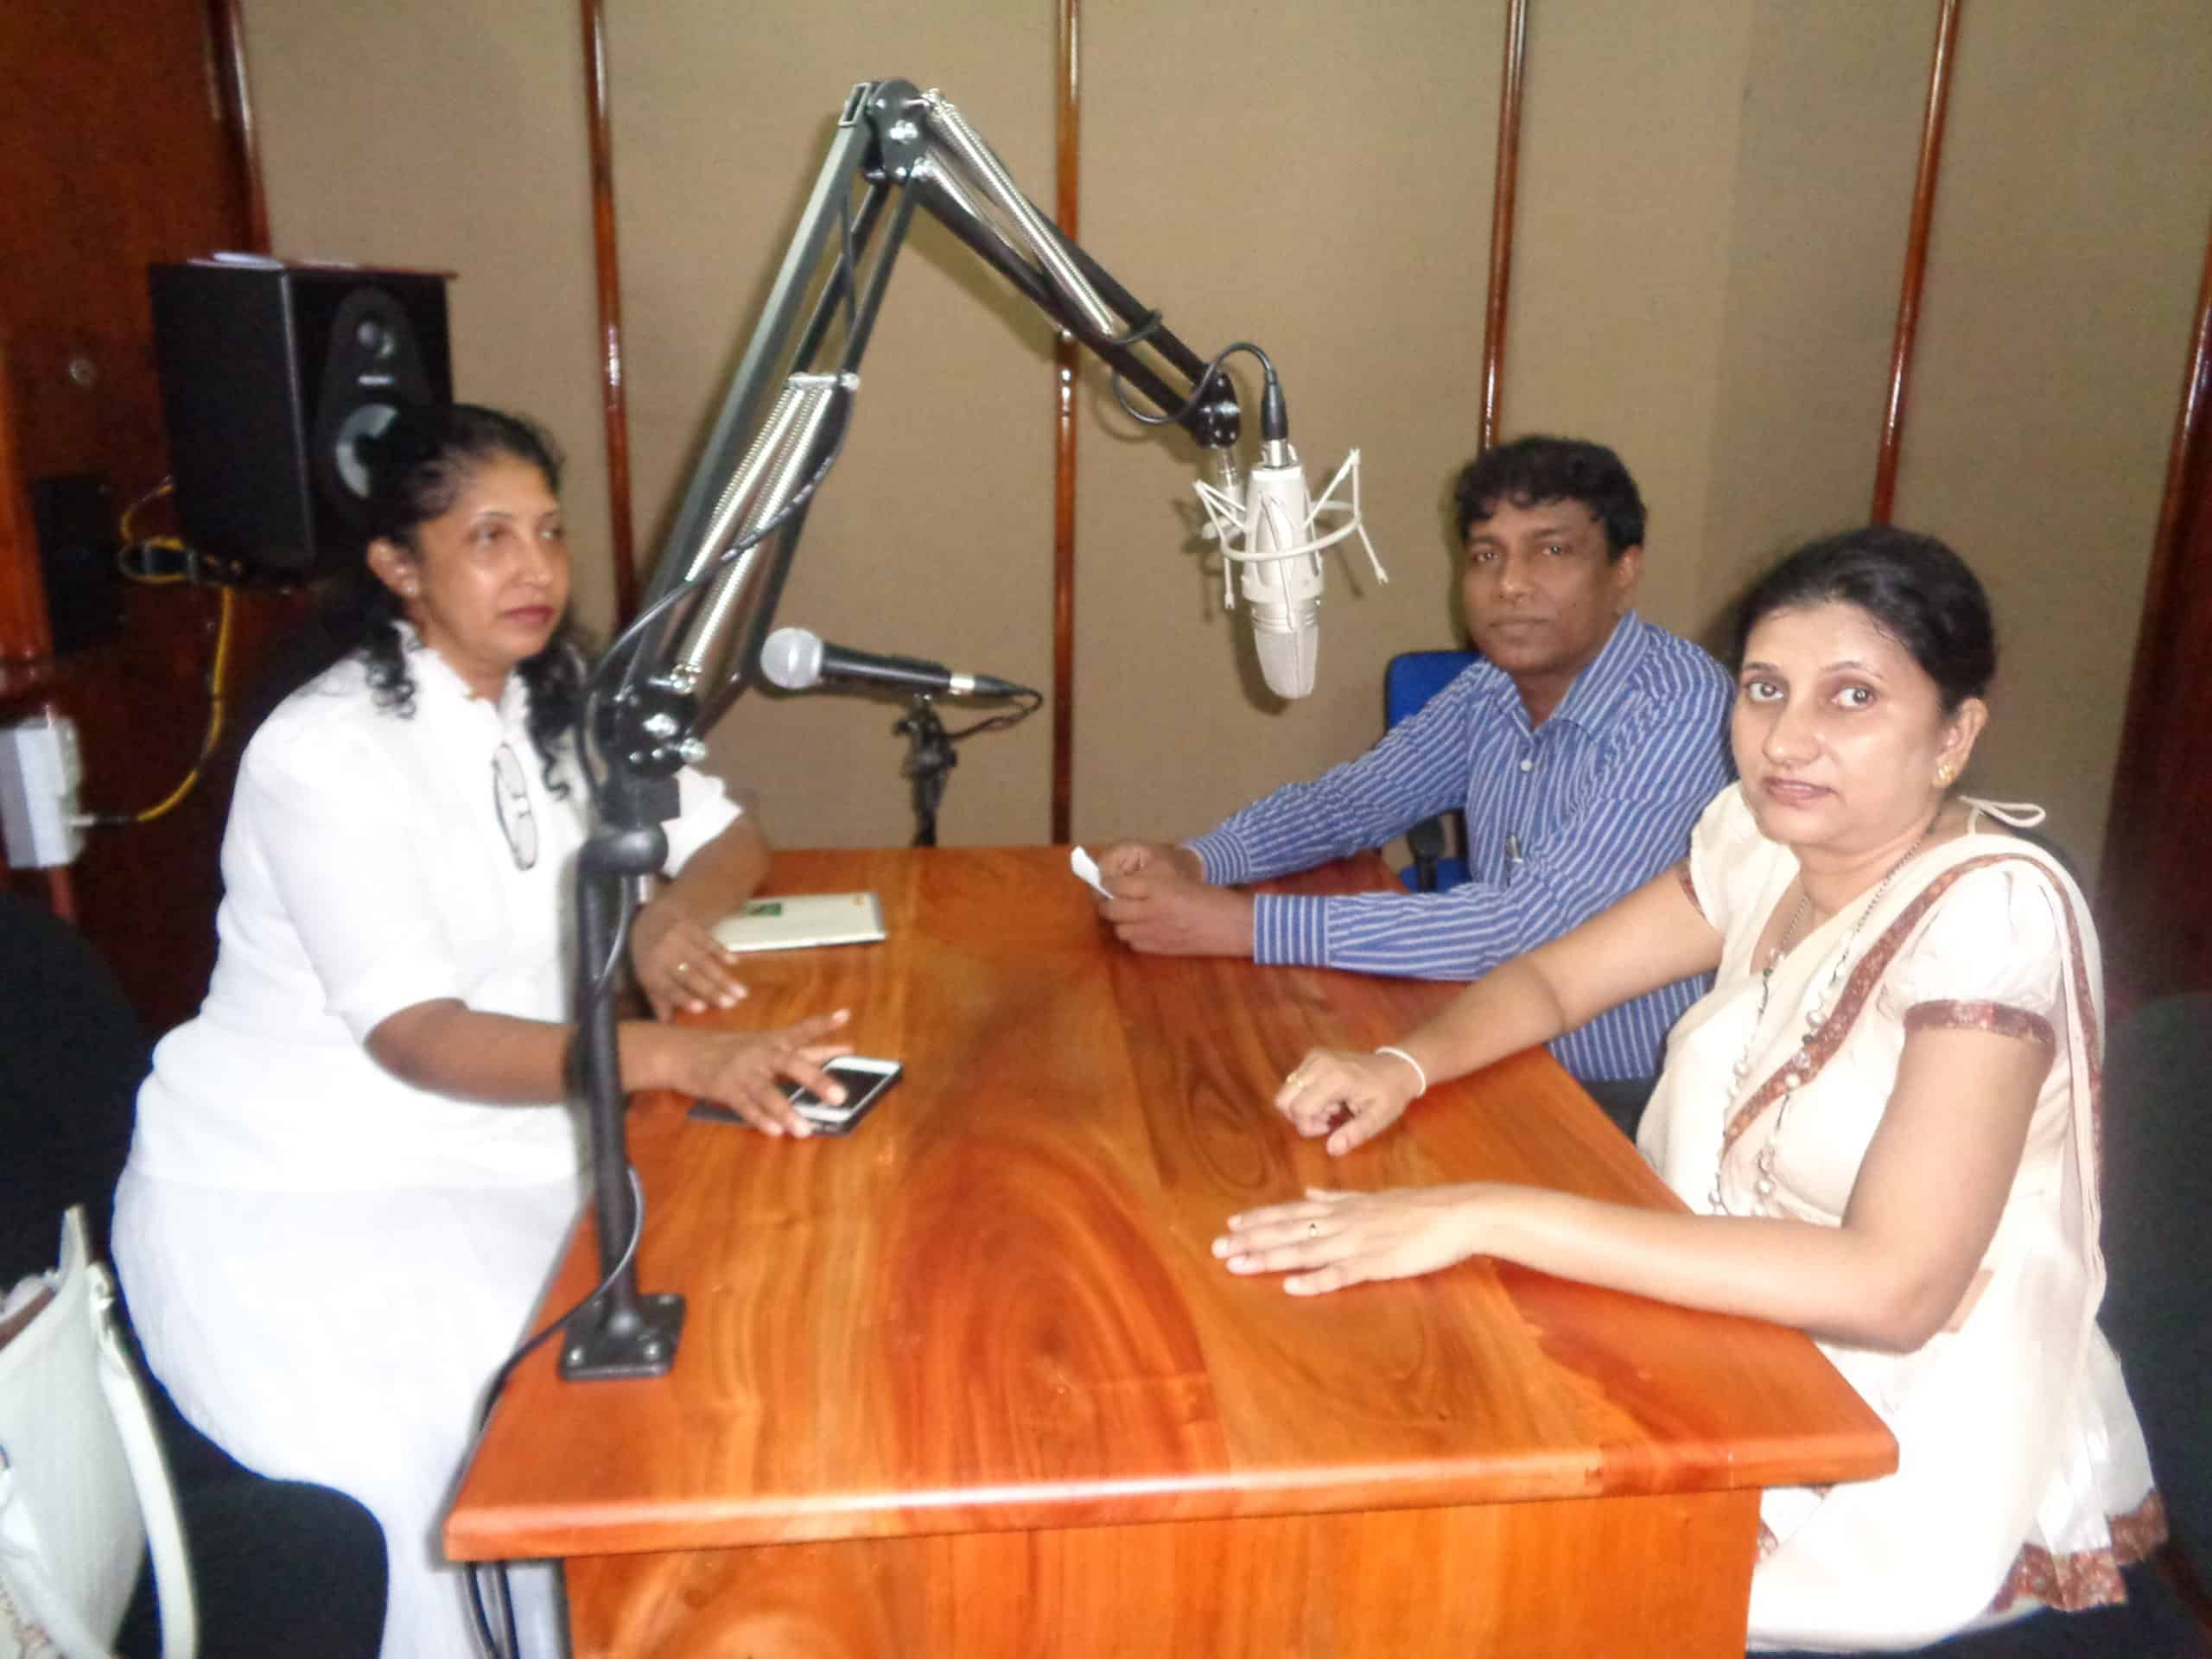 Manique and two other women in a radio studio